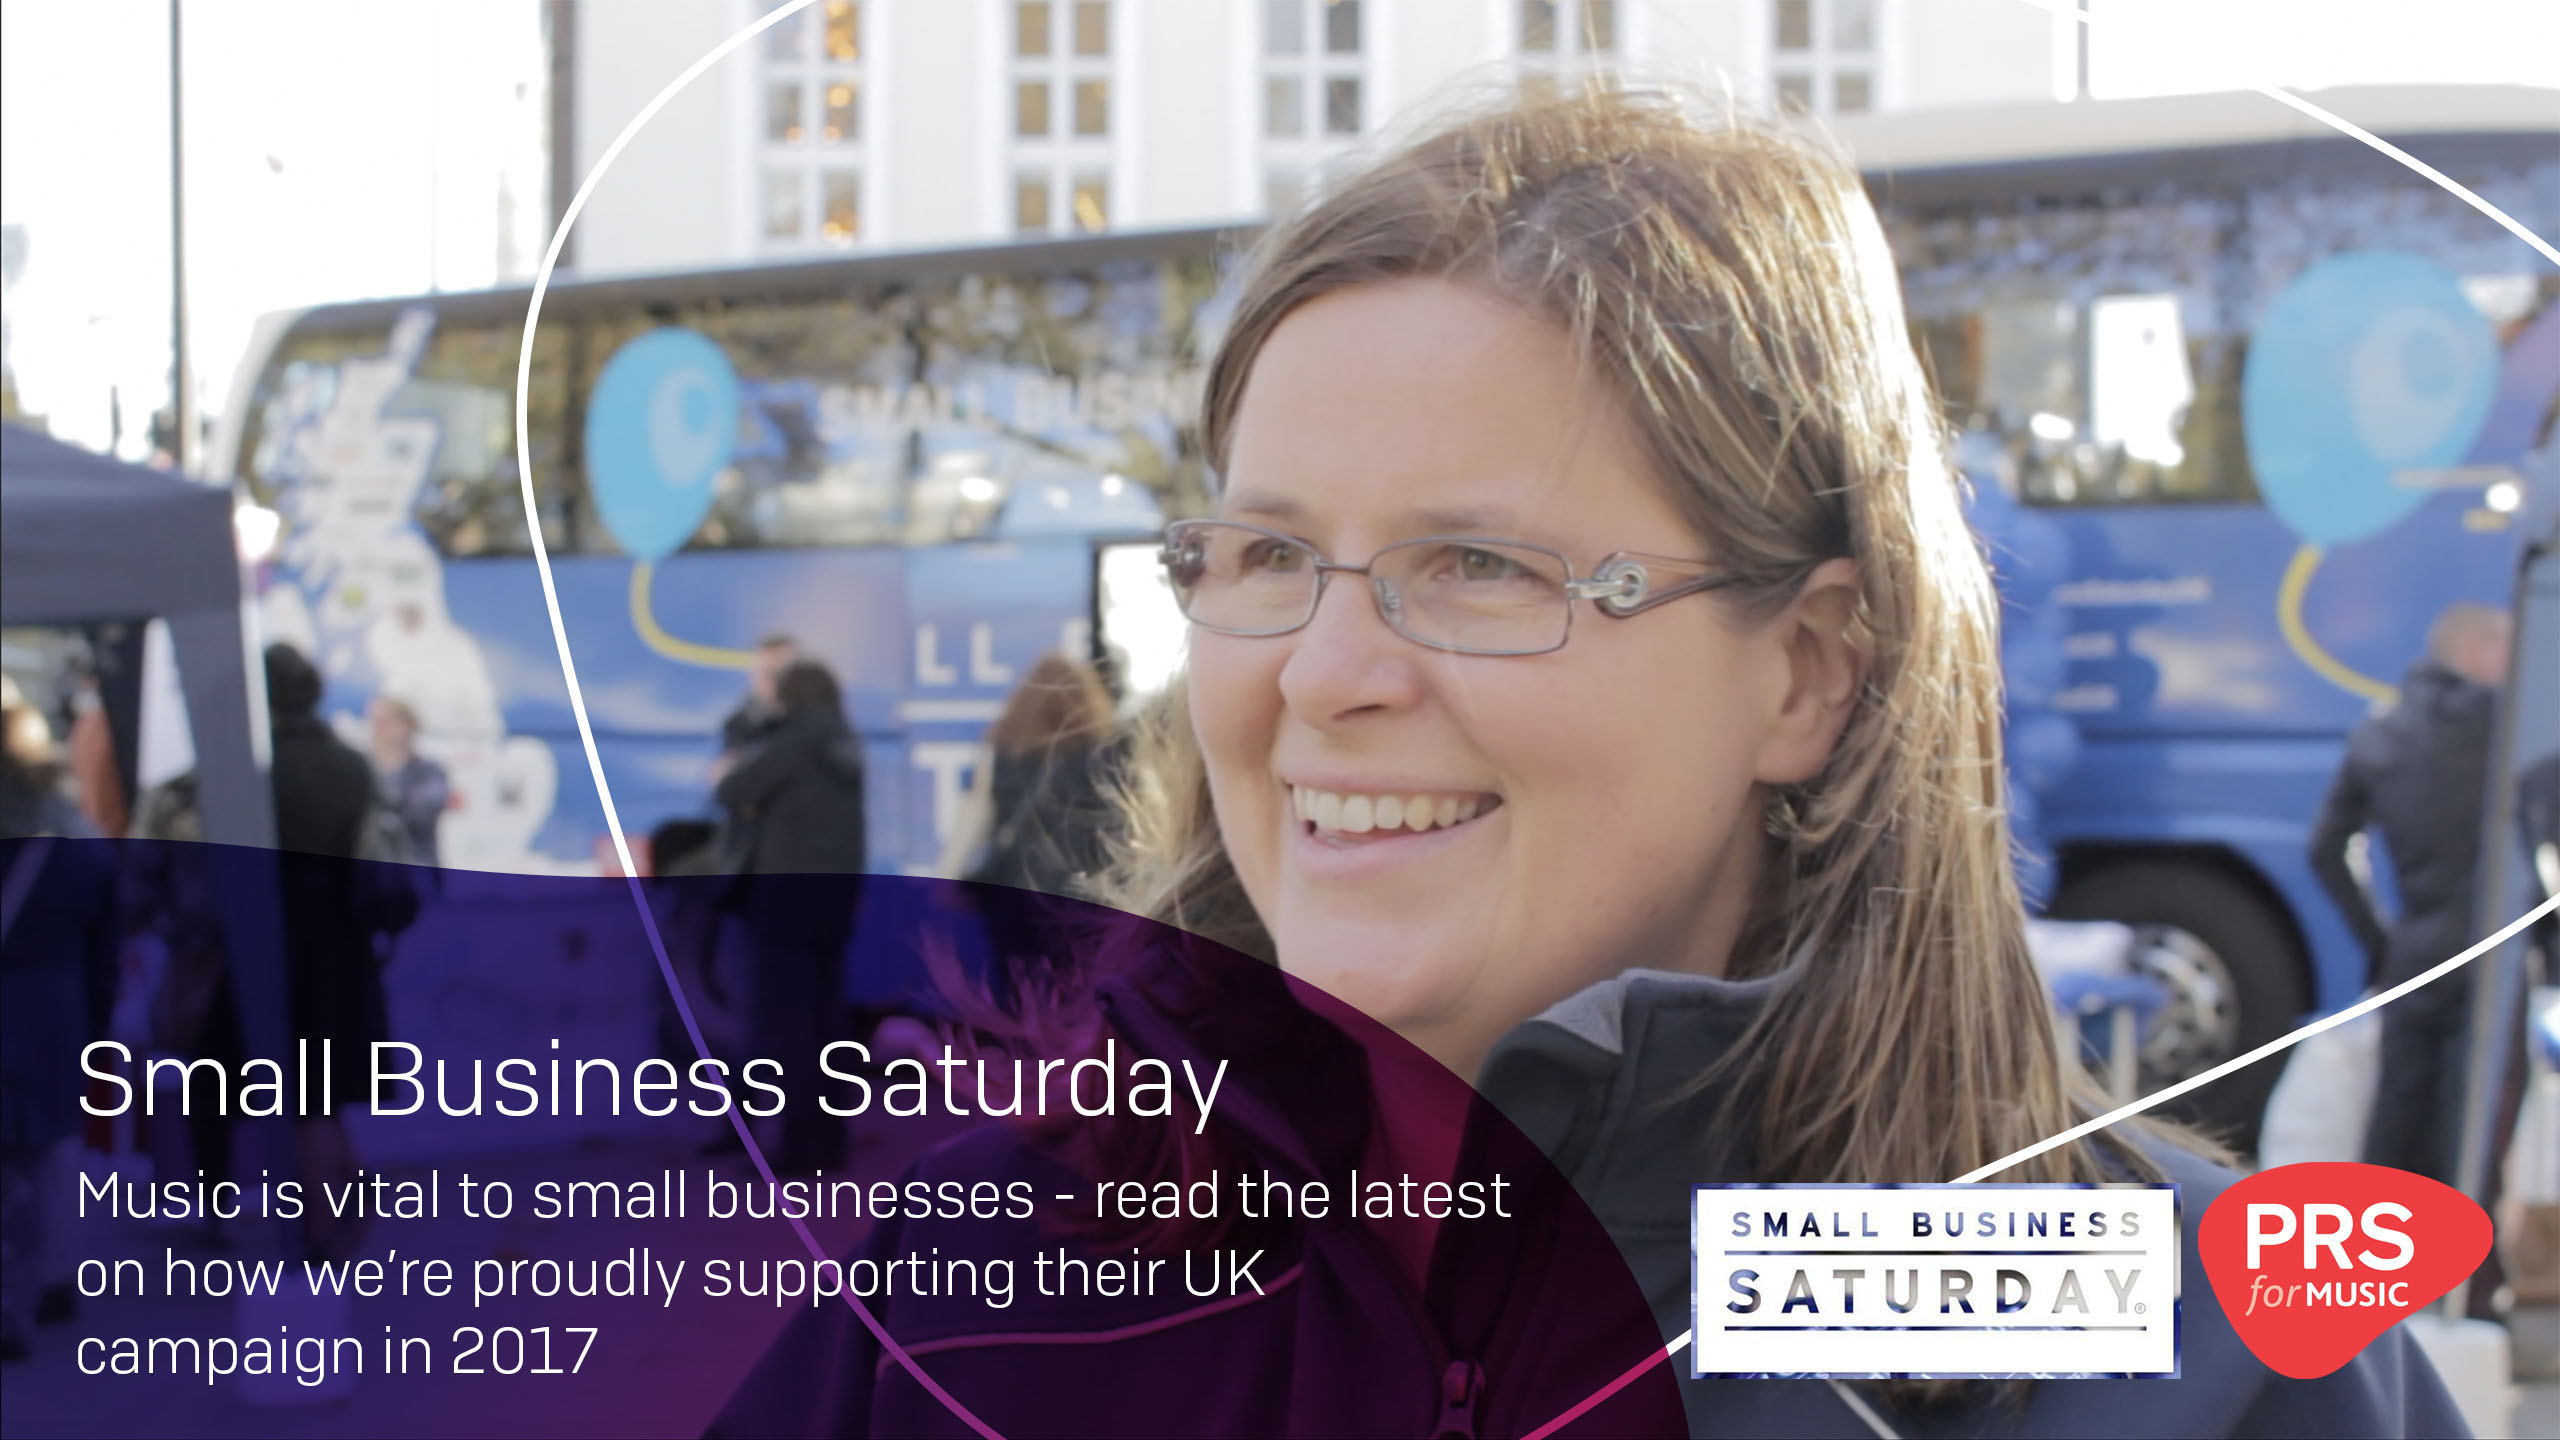 PRS for Music interviews Michelle Ovens MBE from Small Business Saturday